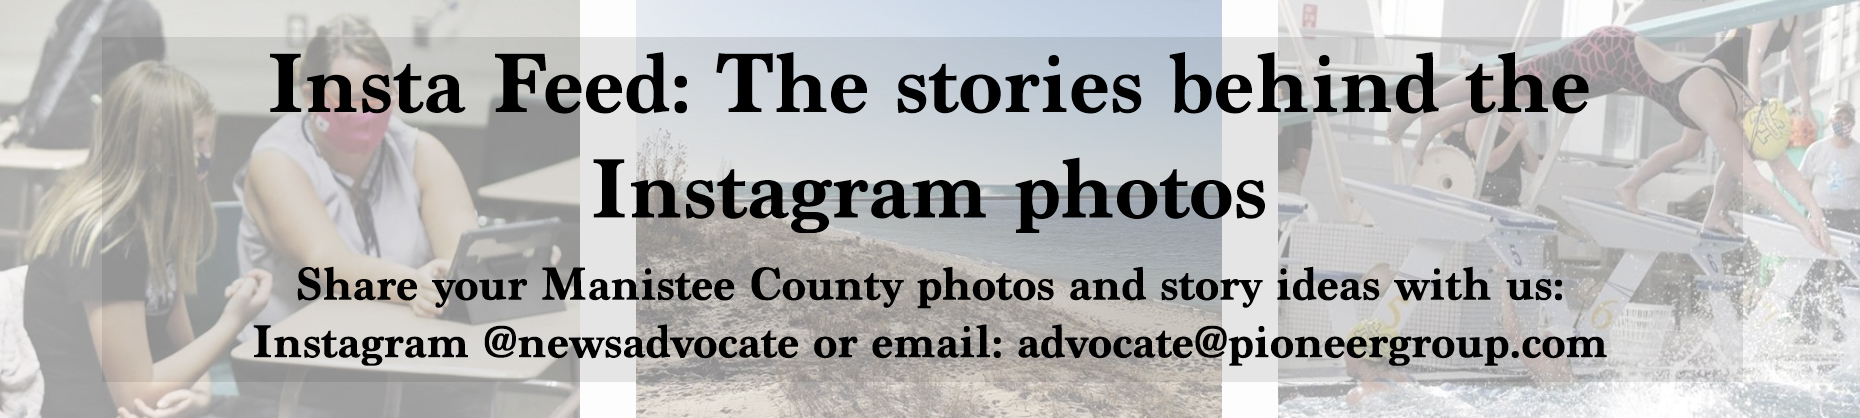 Manistee News Advocate Insta Feed banner